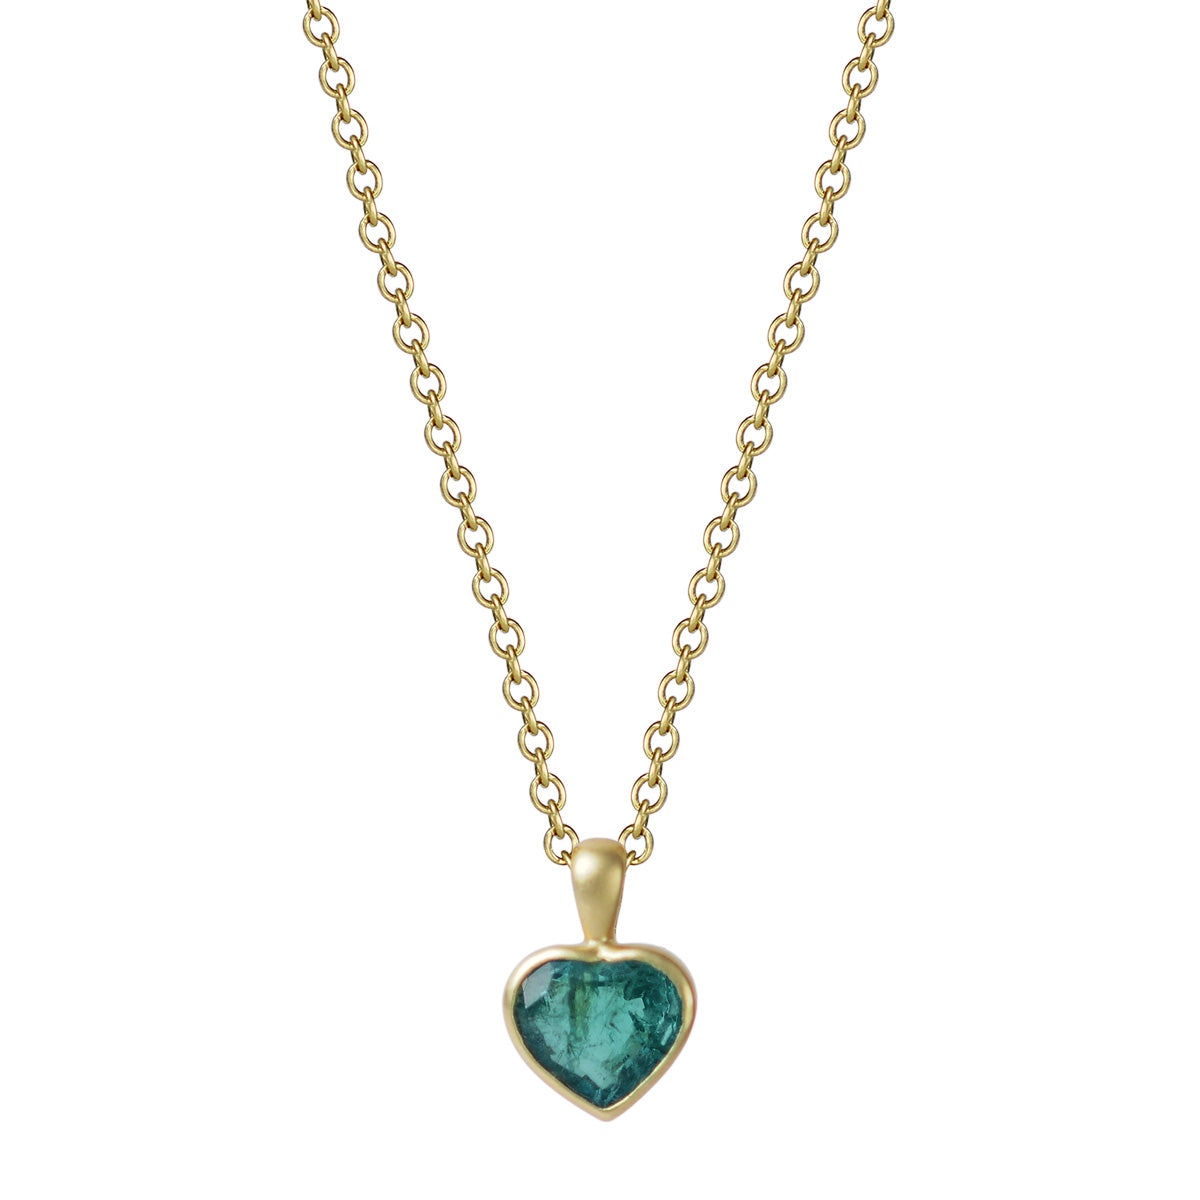 18K Gold Emerald Heart Pendant